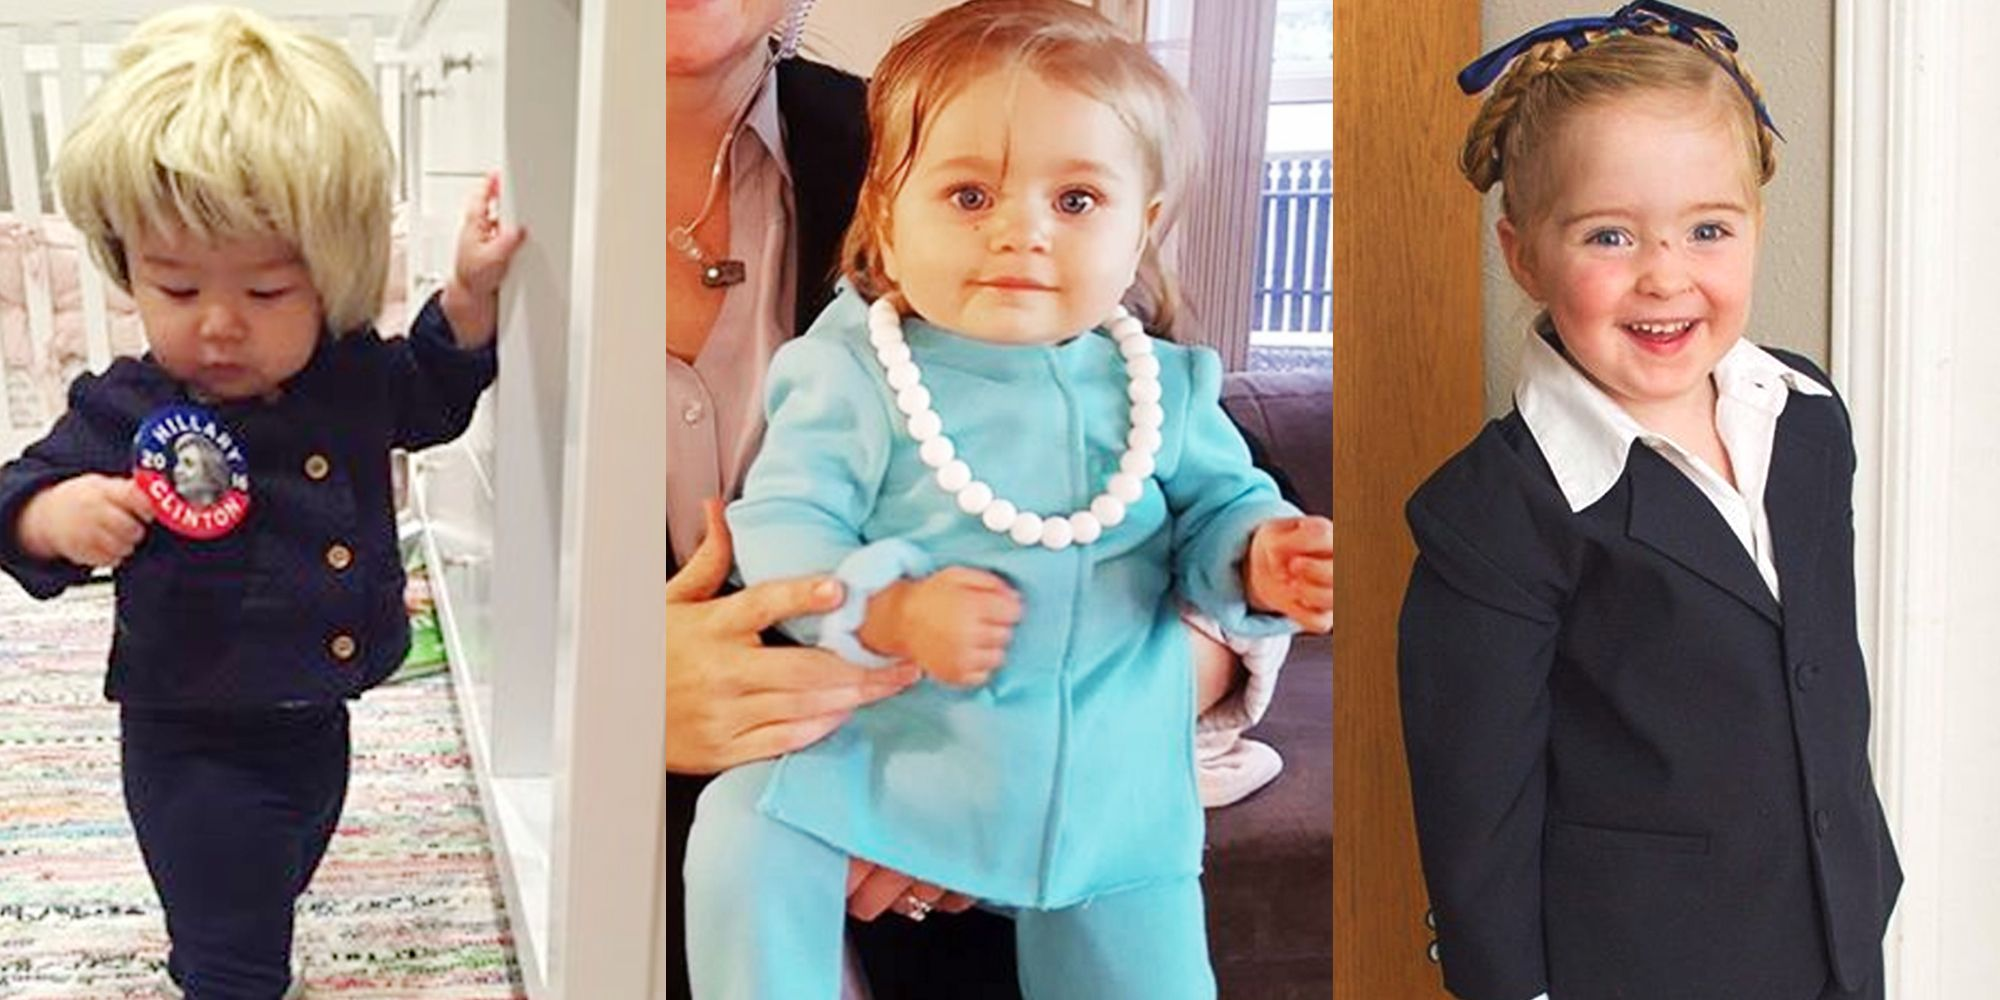 Enjoy These Photos of Adorable, Patriotic Kids in Pantsuits